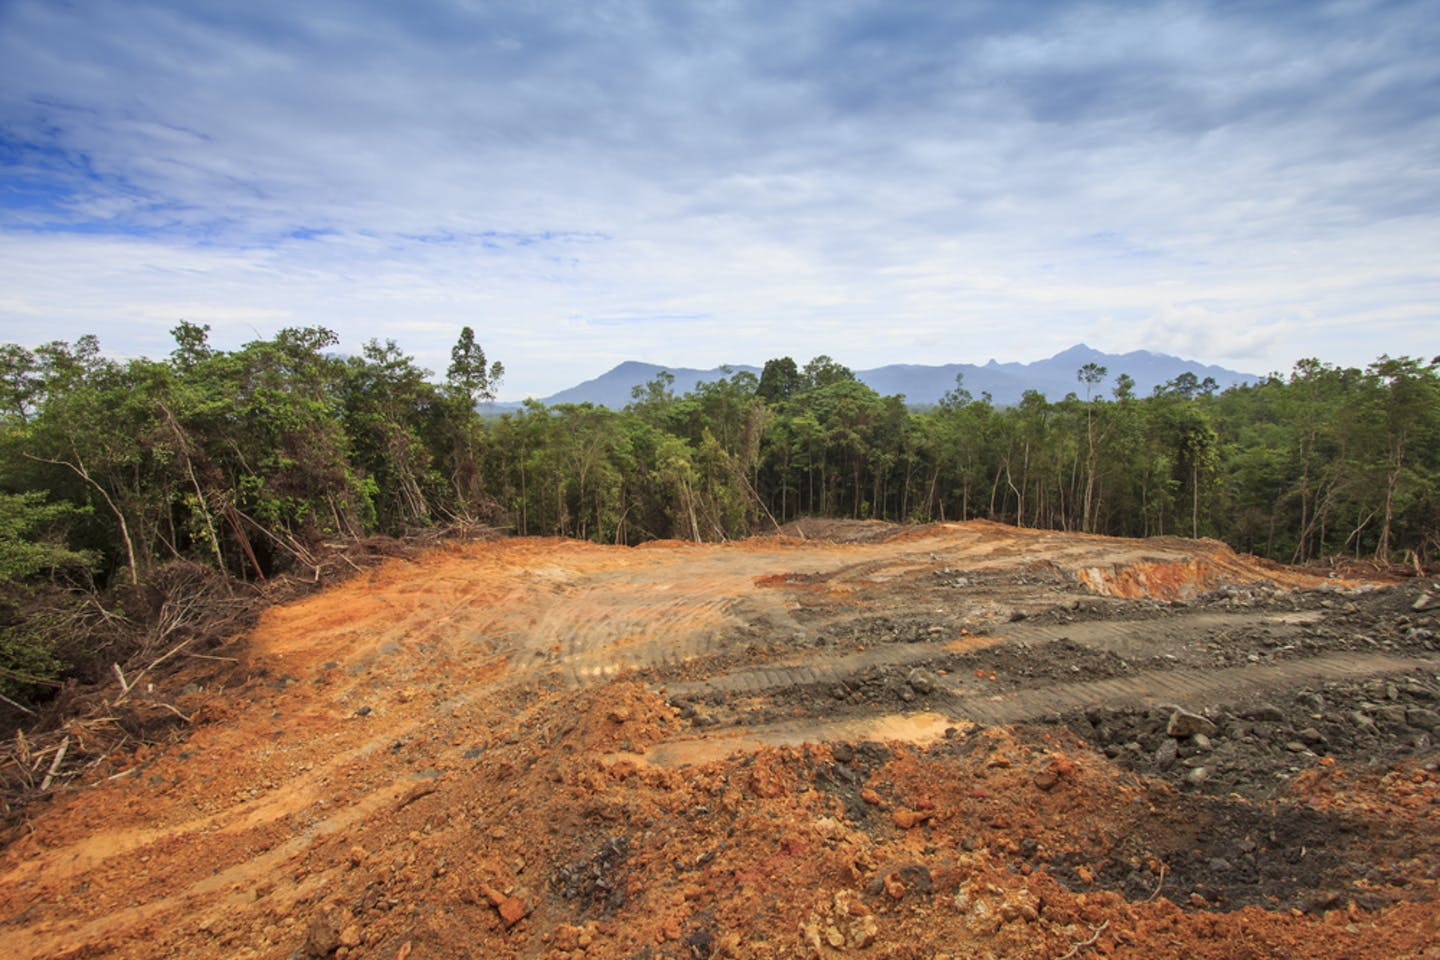 deforested mountains in borneo to give way to palm oil plantation